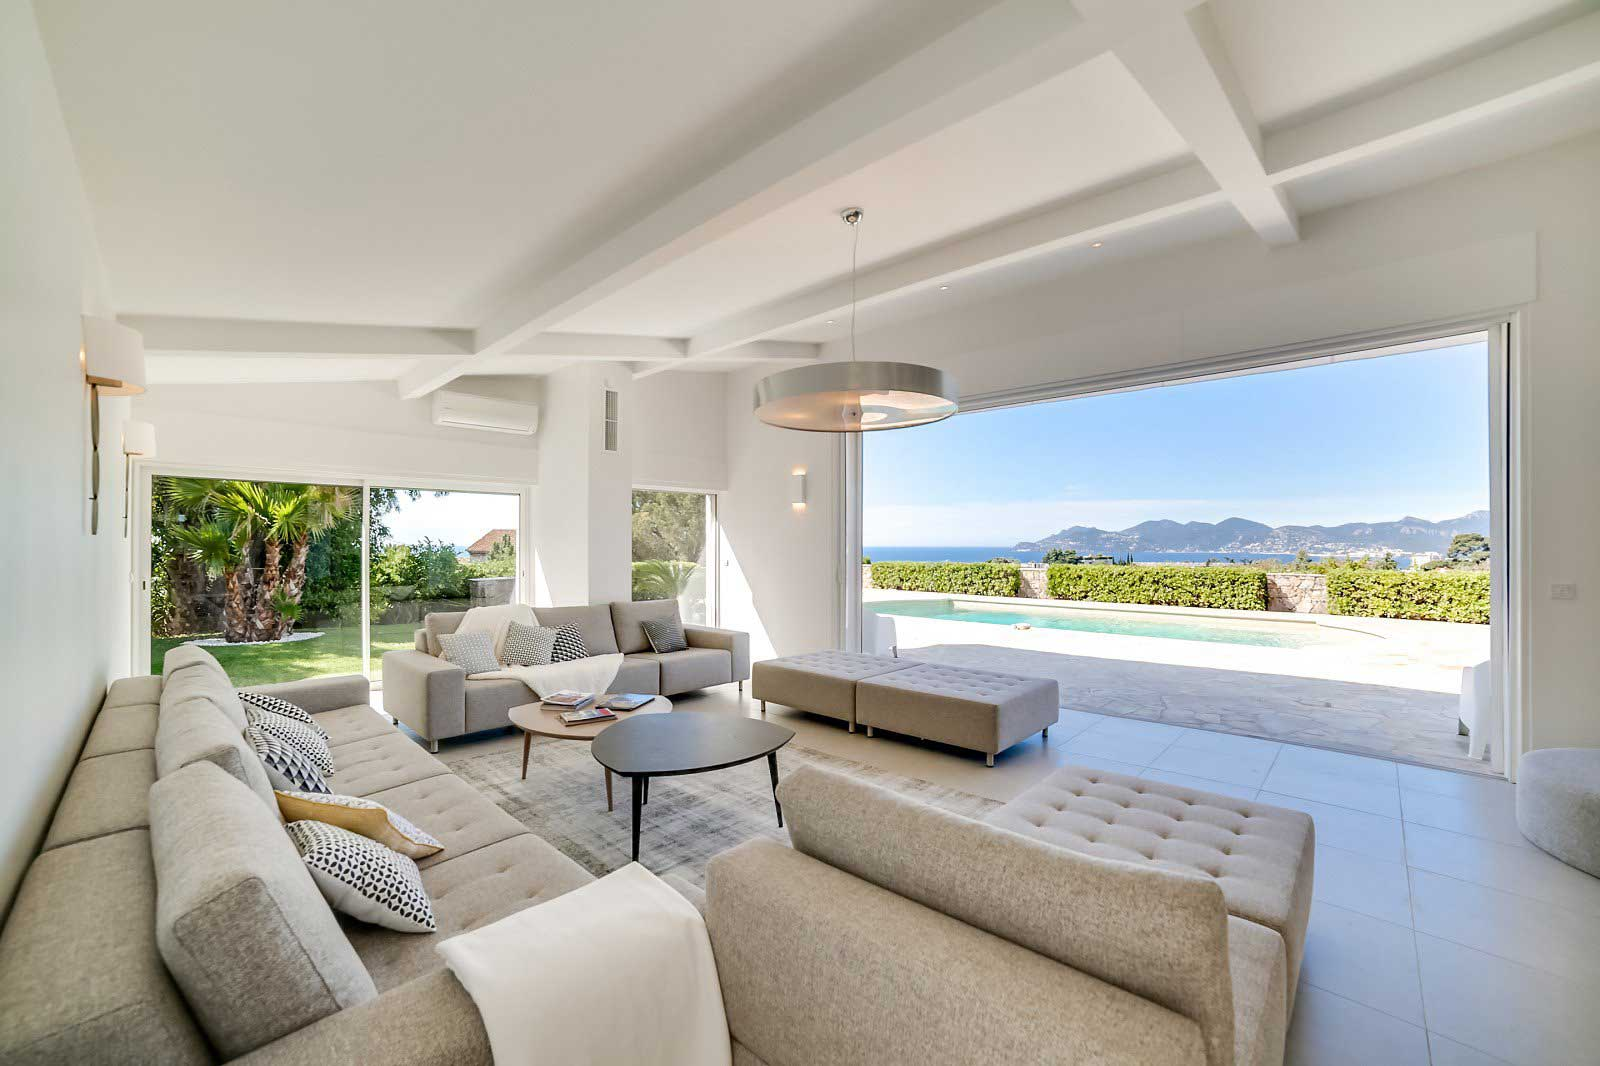 Cannes - France - House, 7 rooms, 6 bedrooms - Slideshow Picture 1